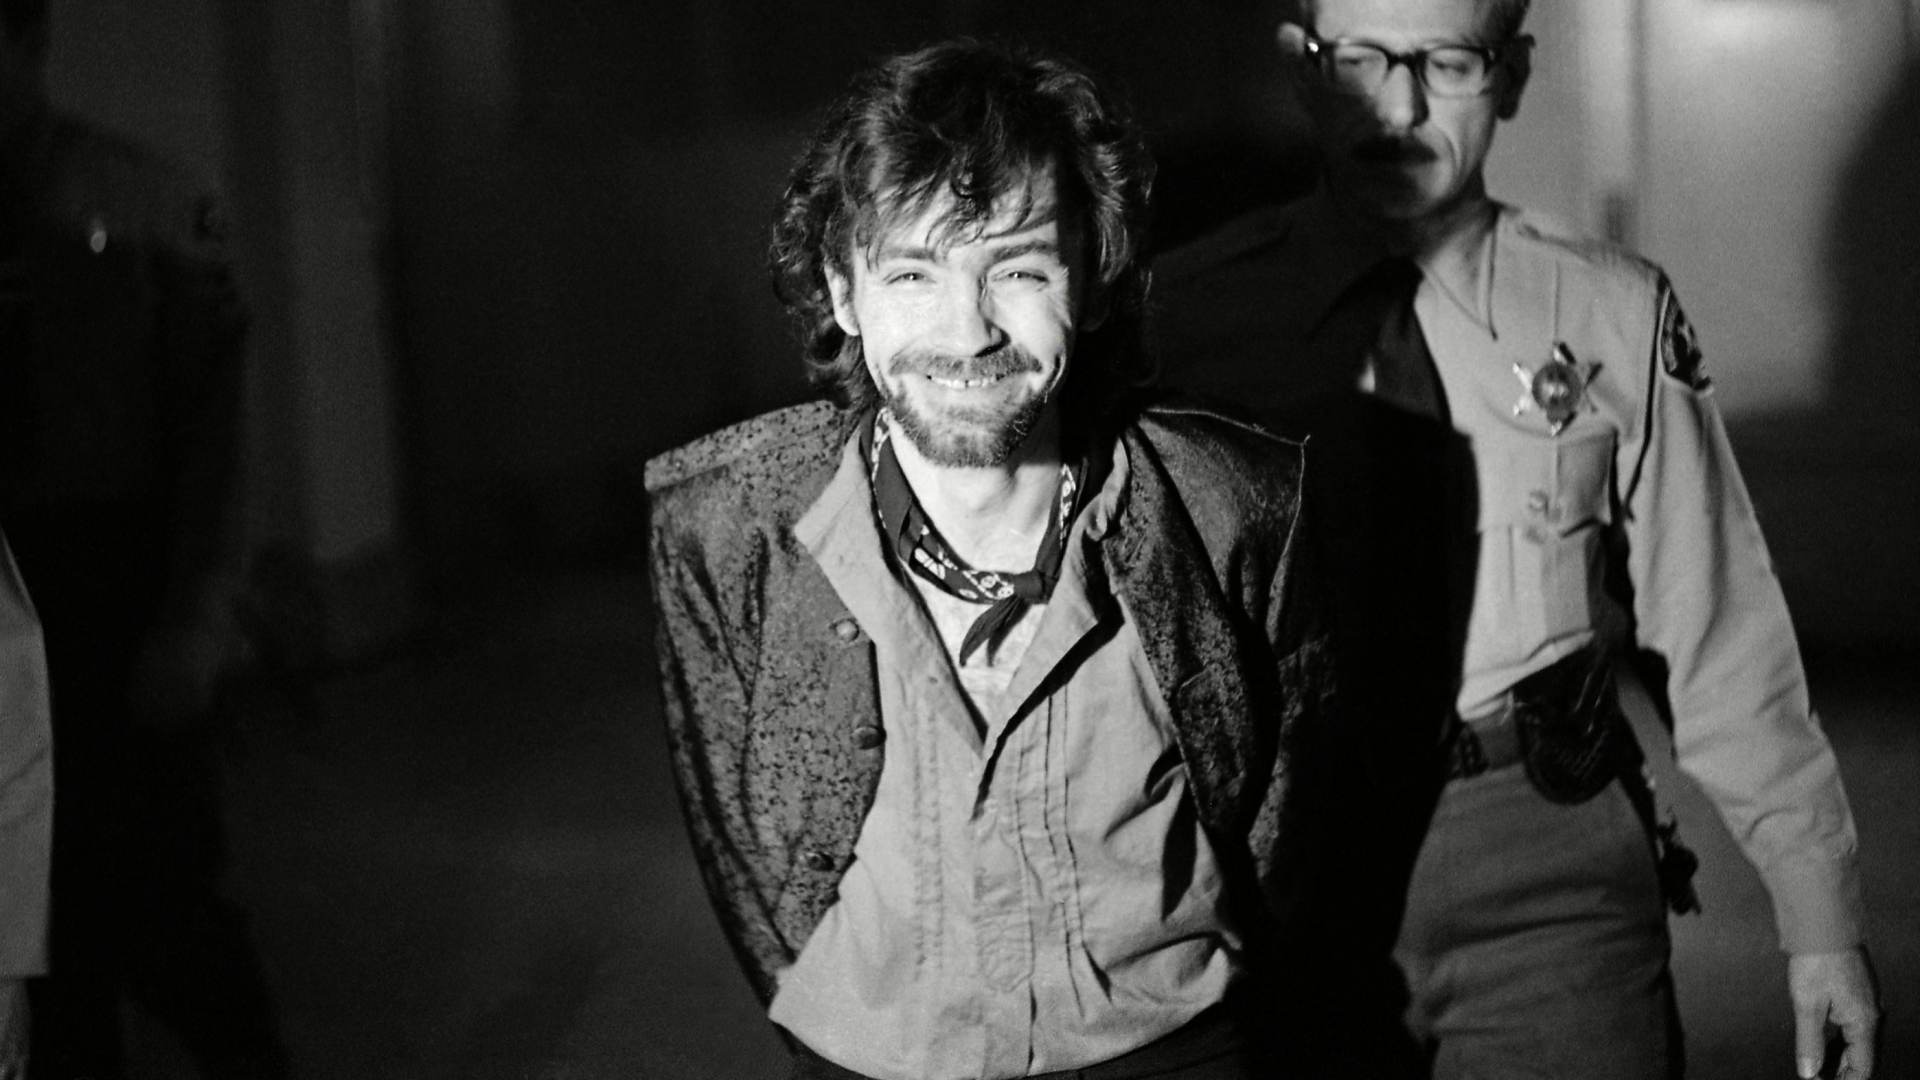 """A smiling Charles Manson during a break in the Tate murder trial after an outburst from his co-defendants. The trouble started after Leslie Van Houten said she wanted to fire her new lawyer, then slapped a bailiff and told the judge, """"I'd strike you if I could"""" before being ejected from the courtroom. (Credit: George Brich/AP/REX/Shutterstock)"""